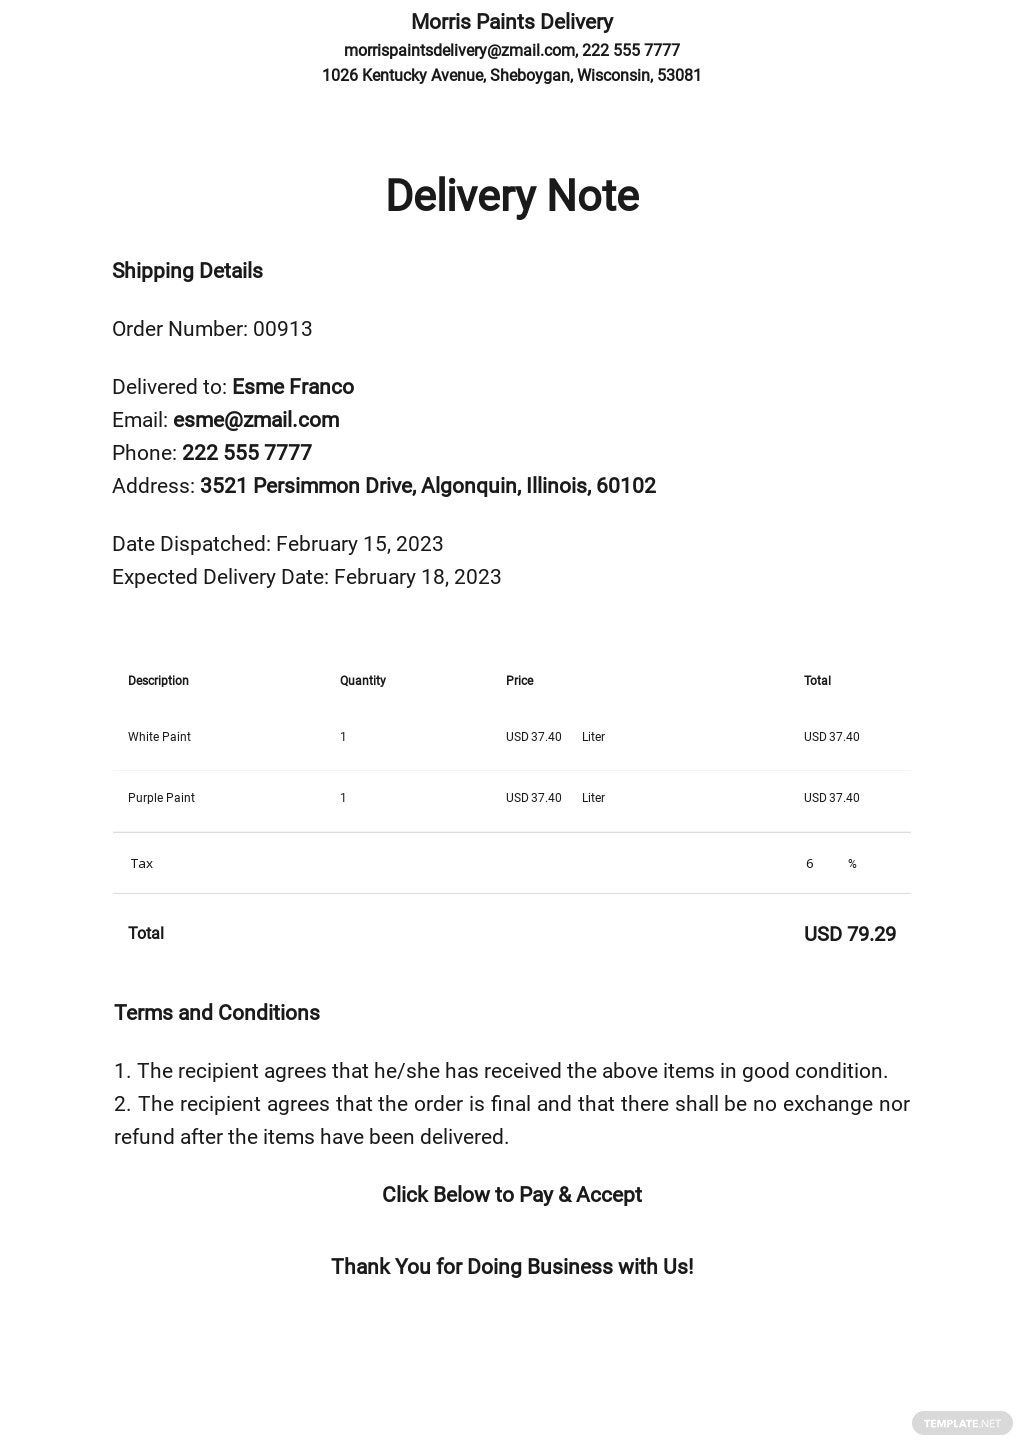 Delivery Note Template.jpe